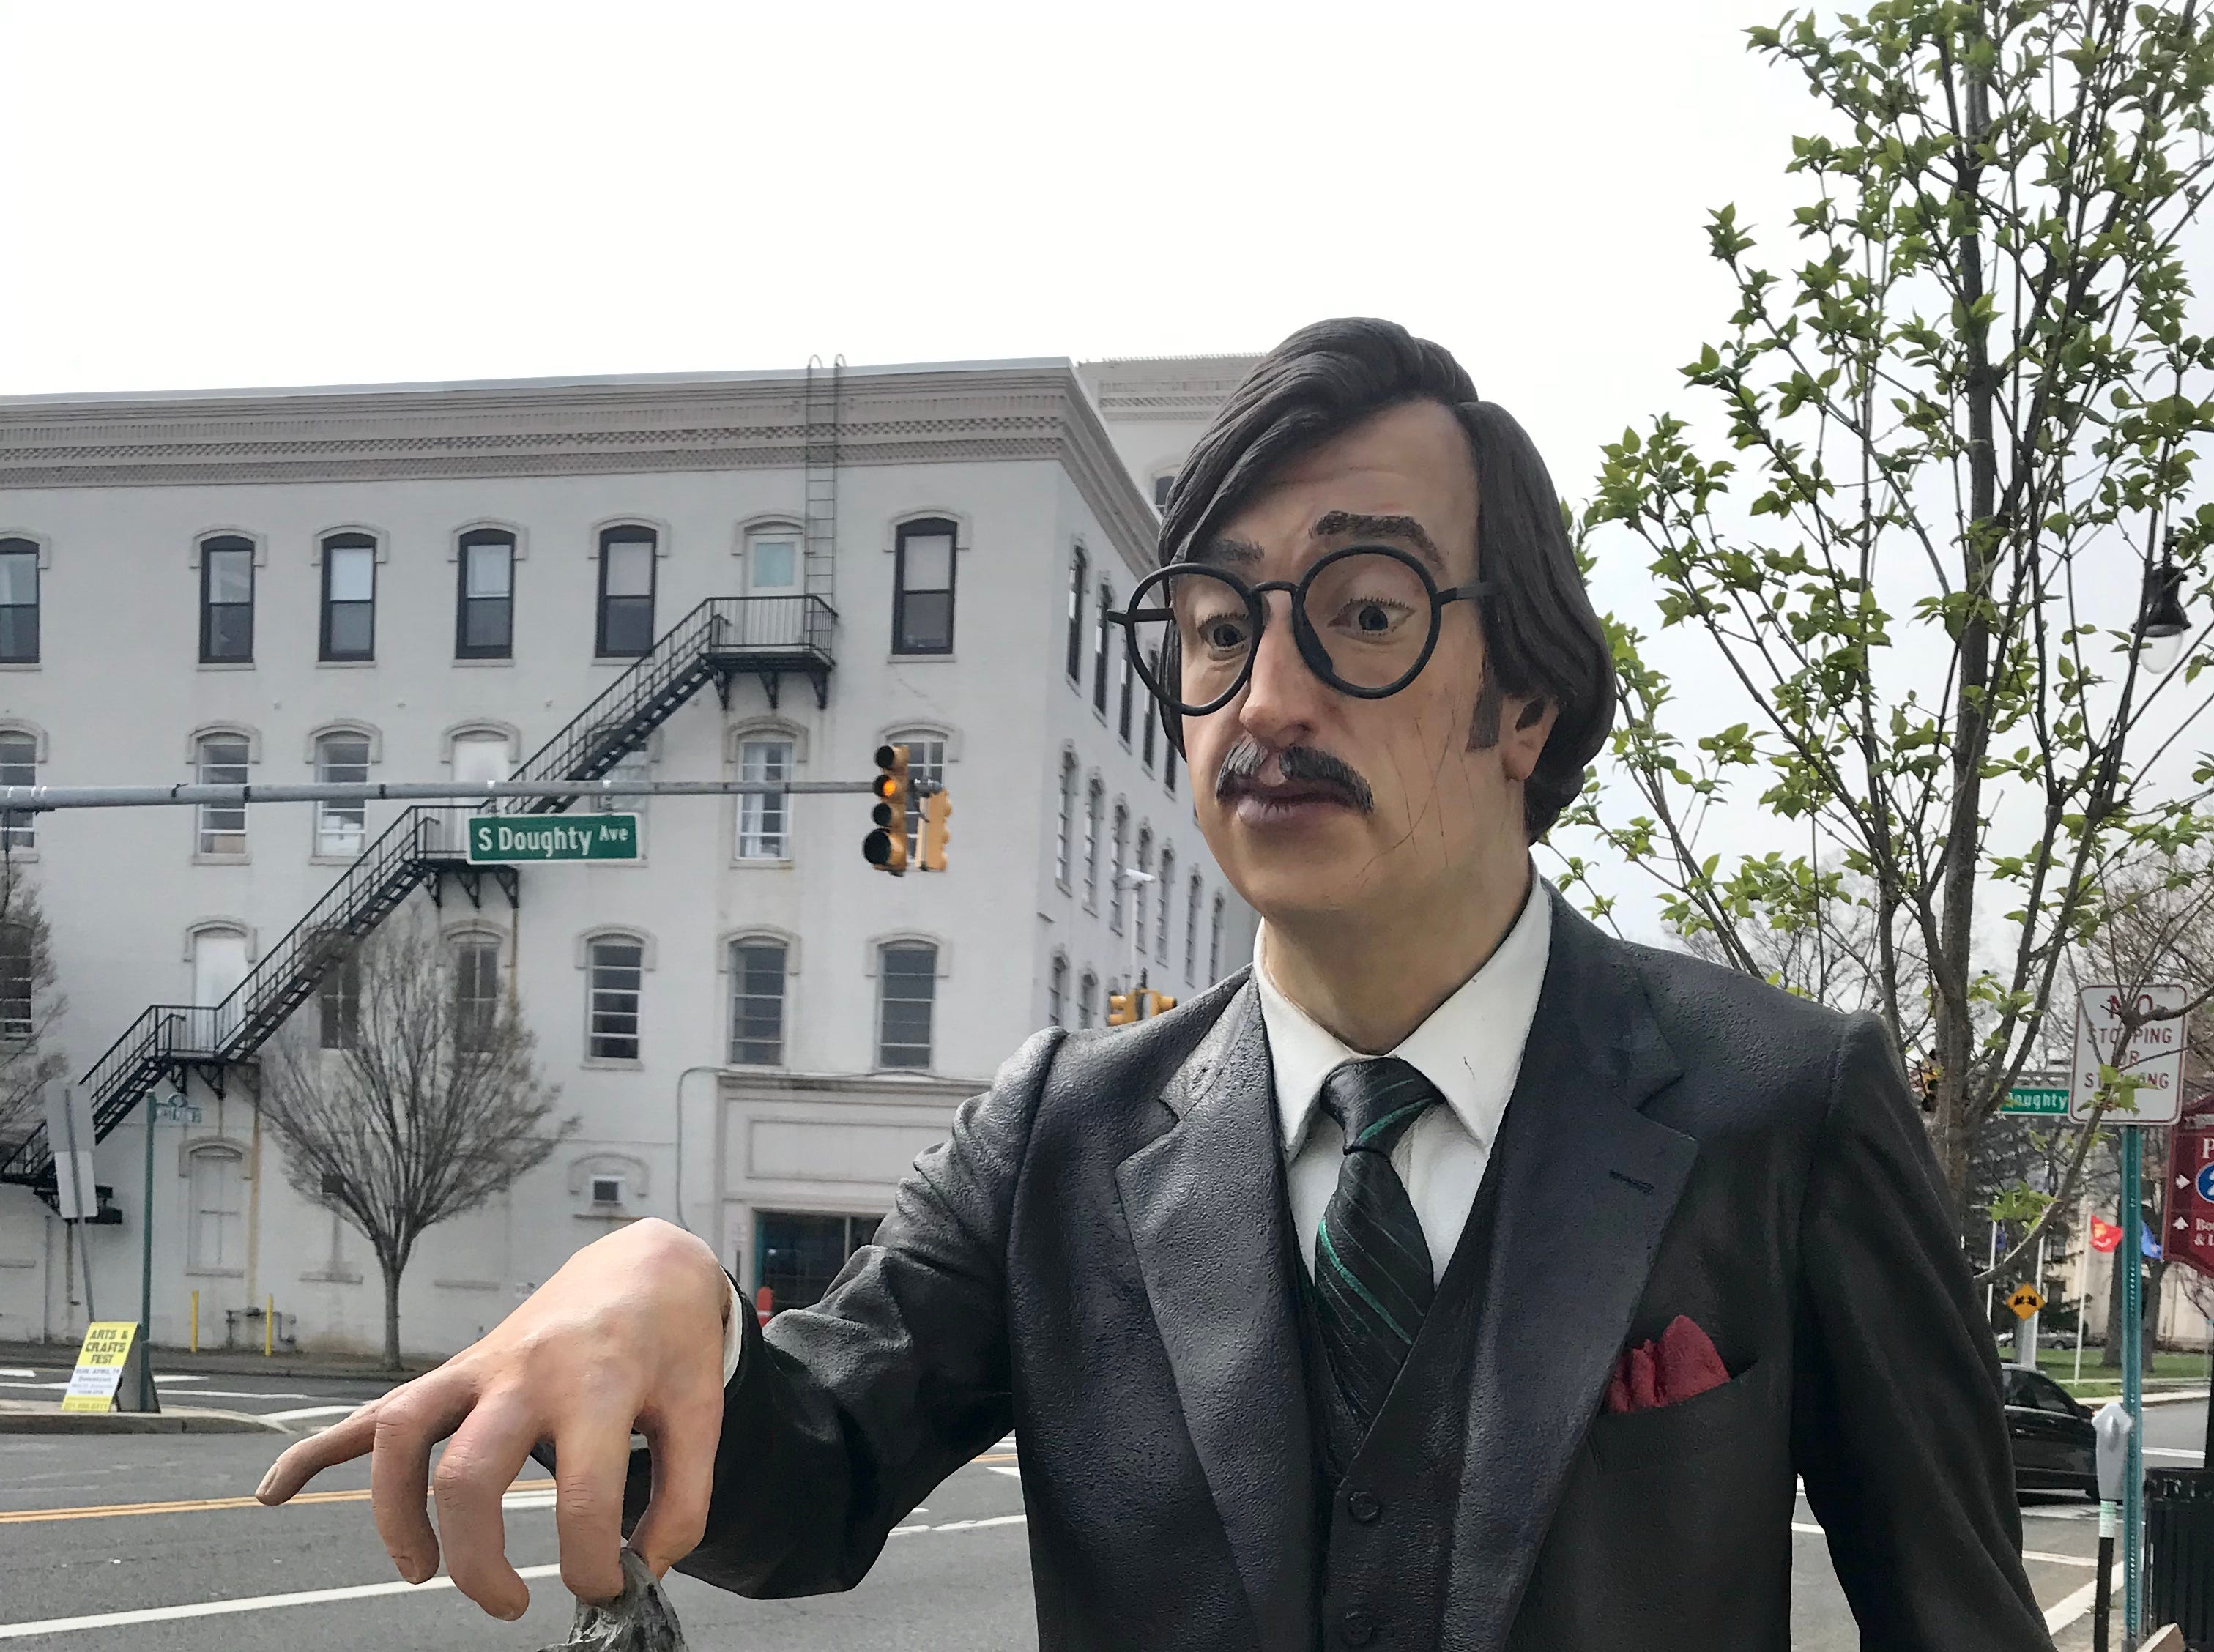 Life-like sculptures by Seward Johnson Atelier, who founded Grounds for Sculpture, can be found throughout Downtown Somerville until July 1.